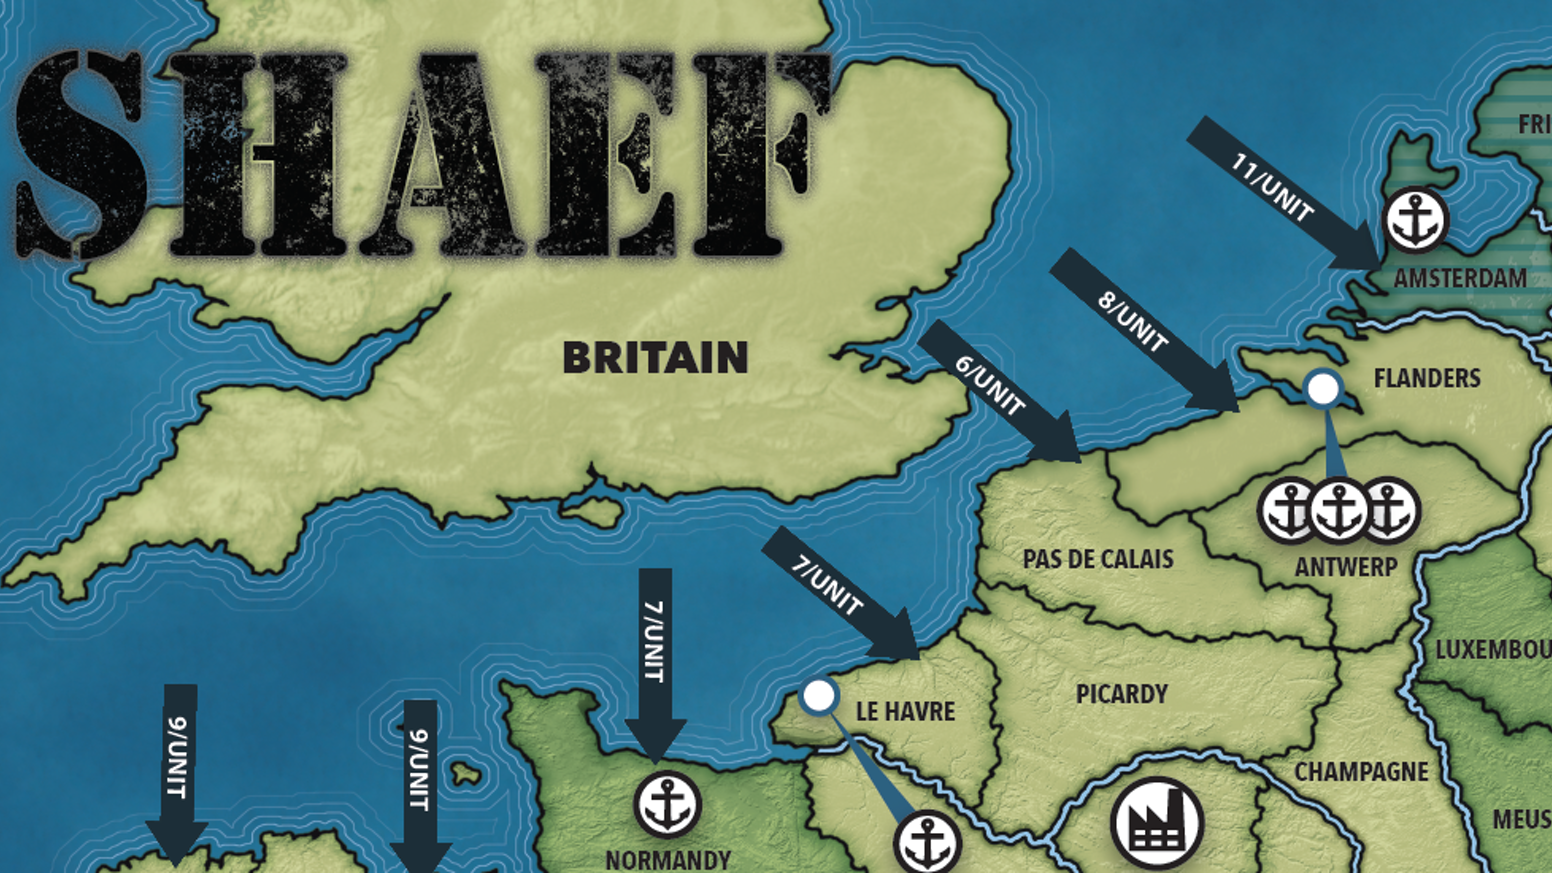 Ian Brody's SHAEF World War 2 board game by Will Townshend